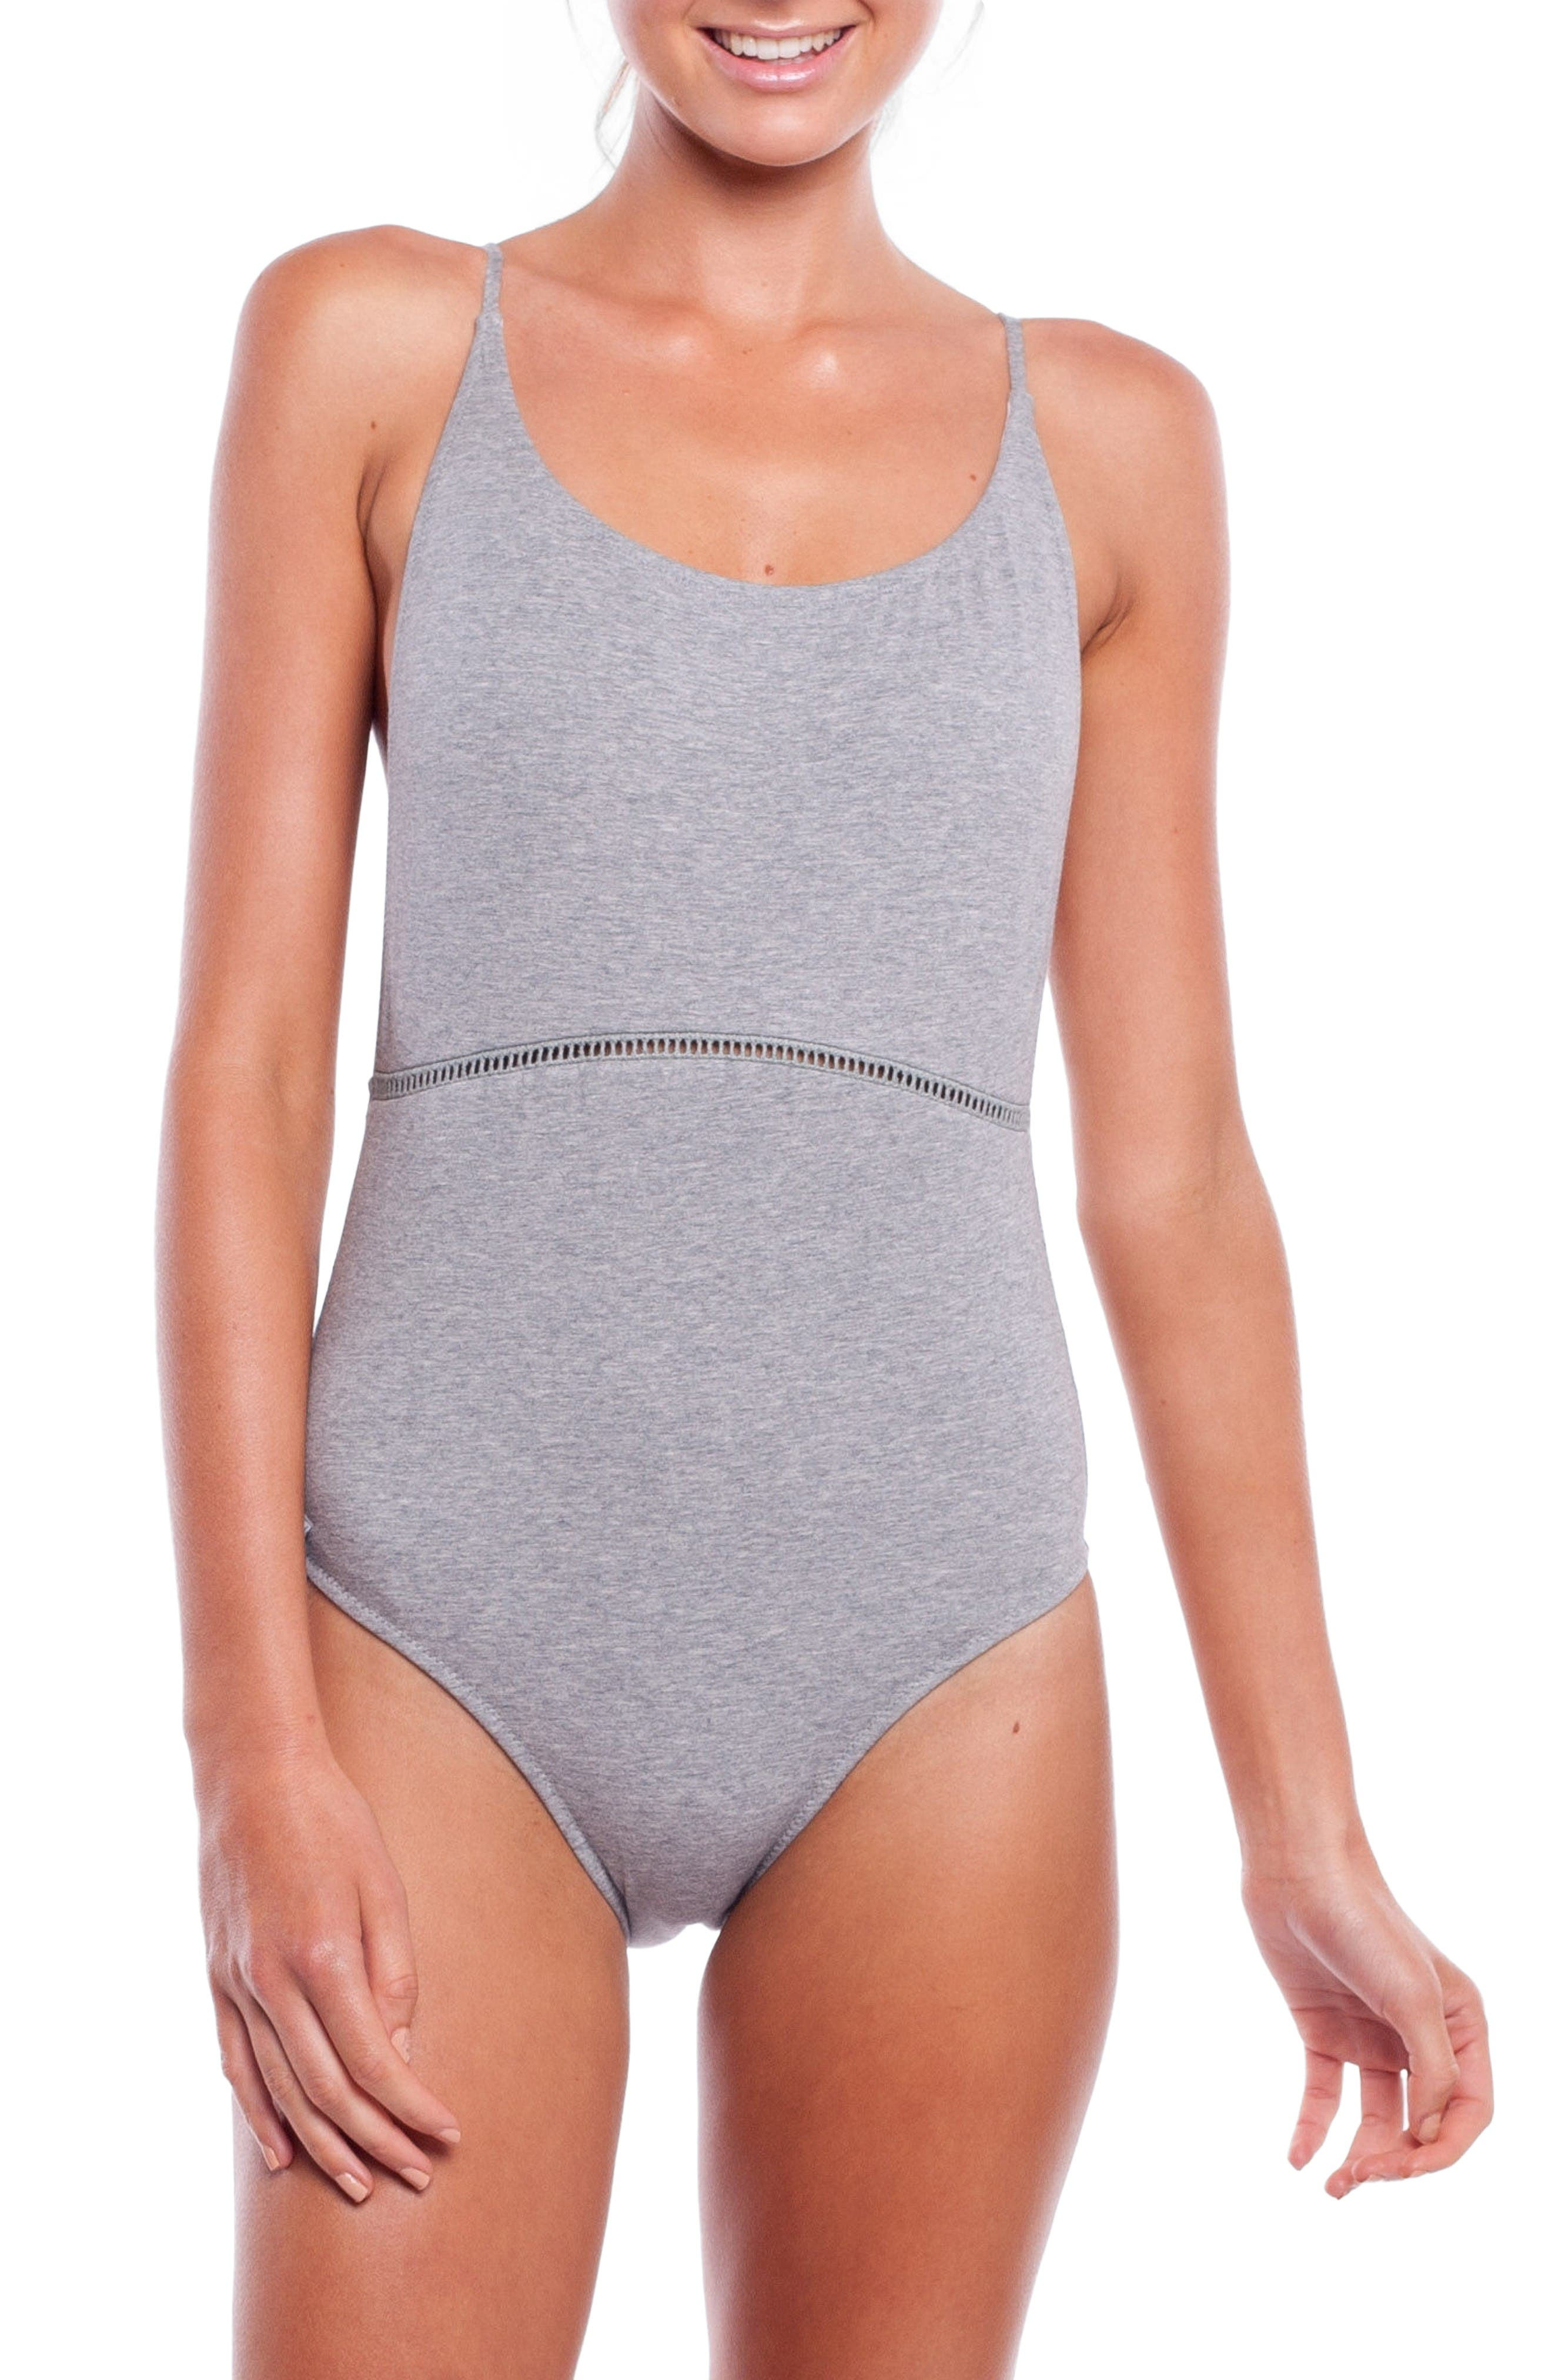 My Scoop One-Piece Swimsuit,                             Main thumbnail 1, color,                             Grey